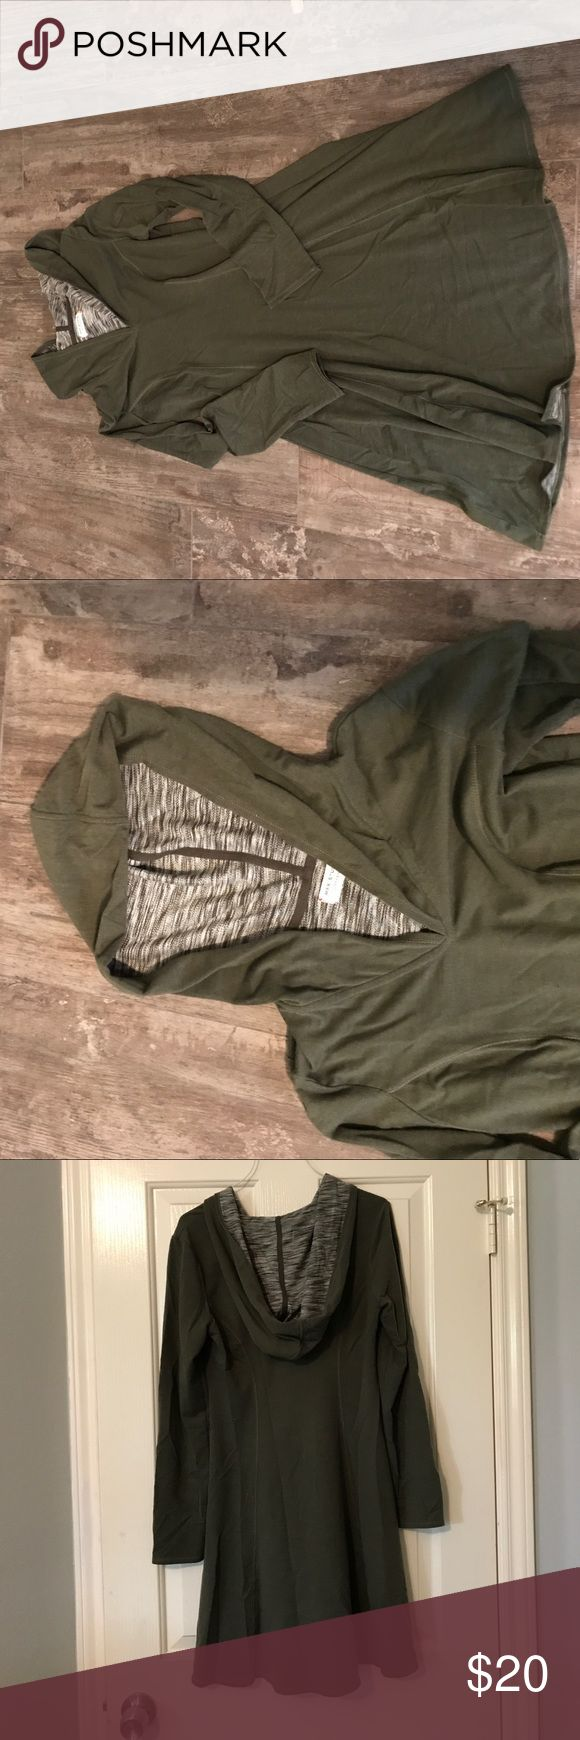 Max studio weekend dress with hood Super comfy and cozy green dress with hood.  Used but good condition.  Non smoking home. Max Studio Dresses